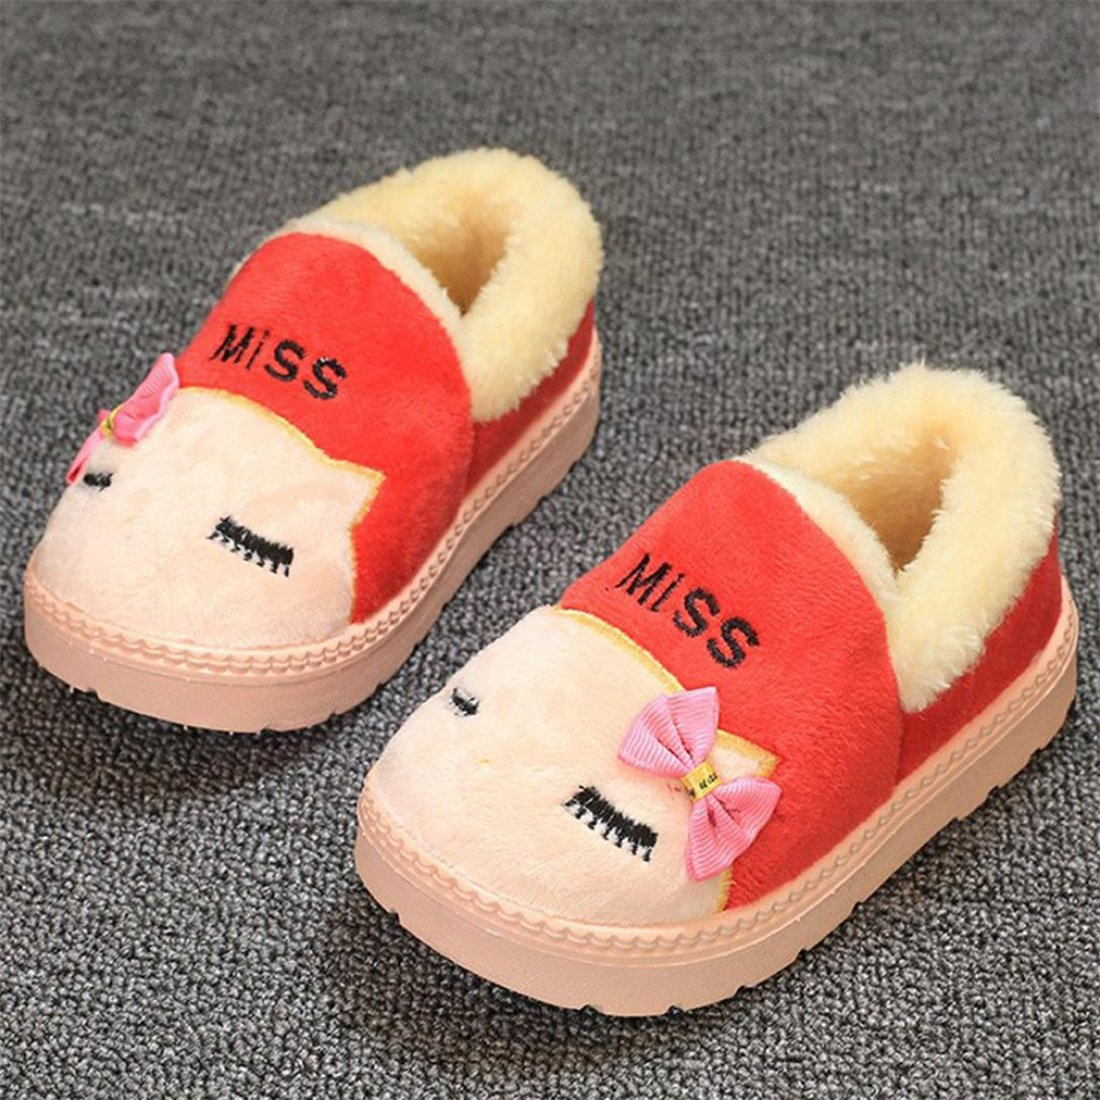 HANYI Infant Toddler Baby Girls Boys Cute Winter Plush Soft Sole Non-Slip Snow Boots Warm Velvet Bowknot Shoes